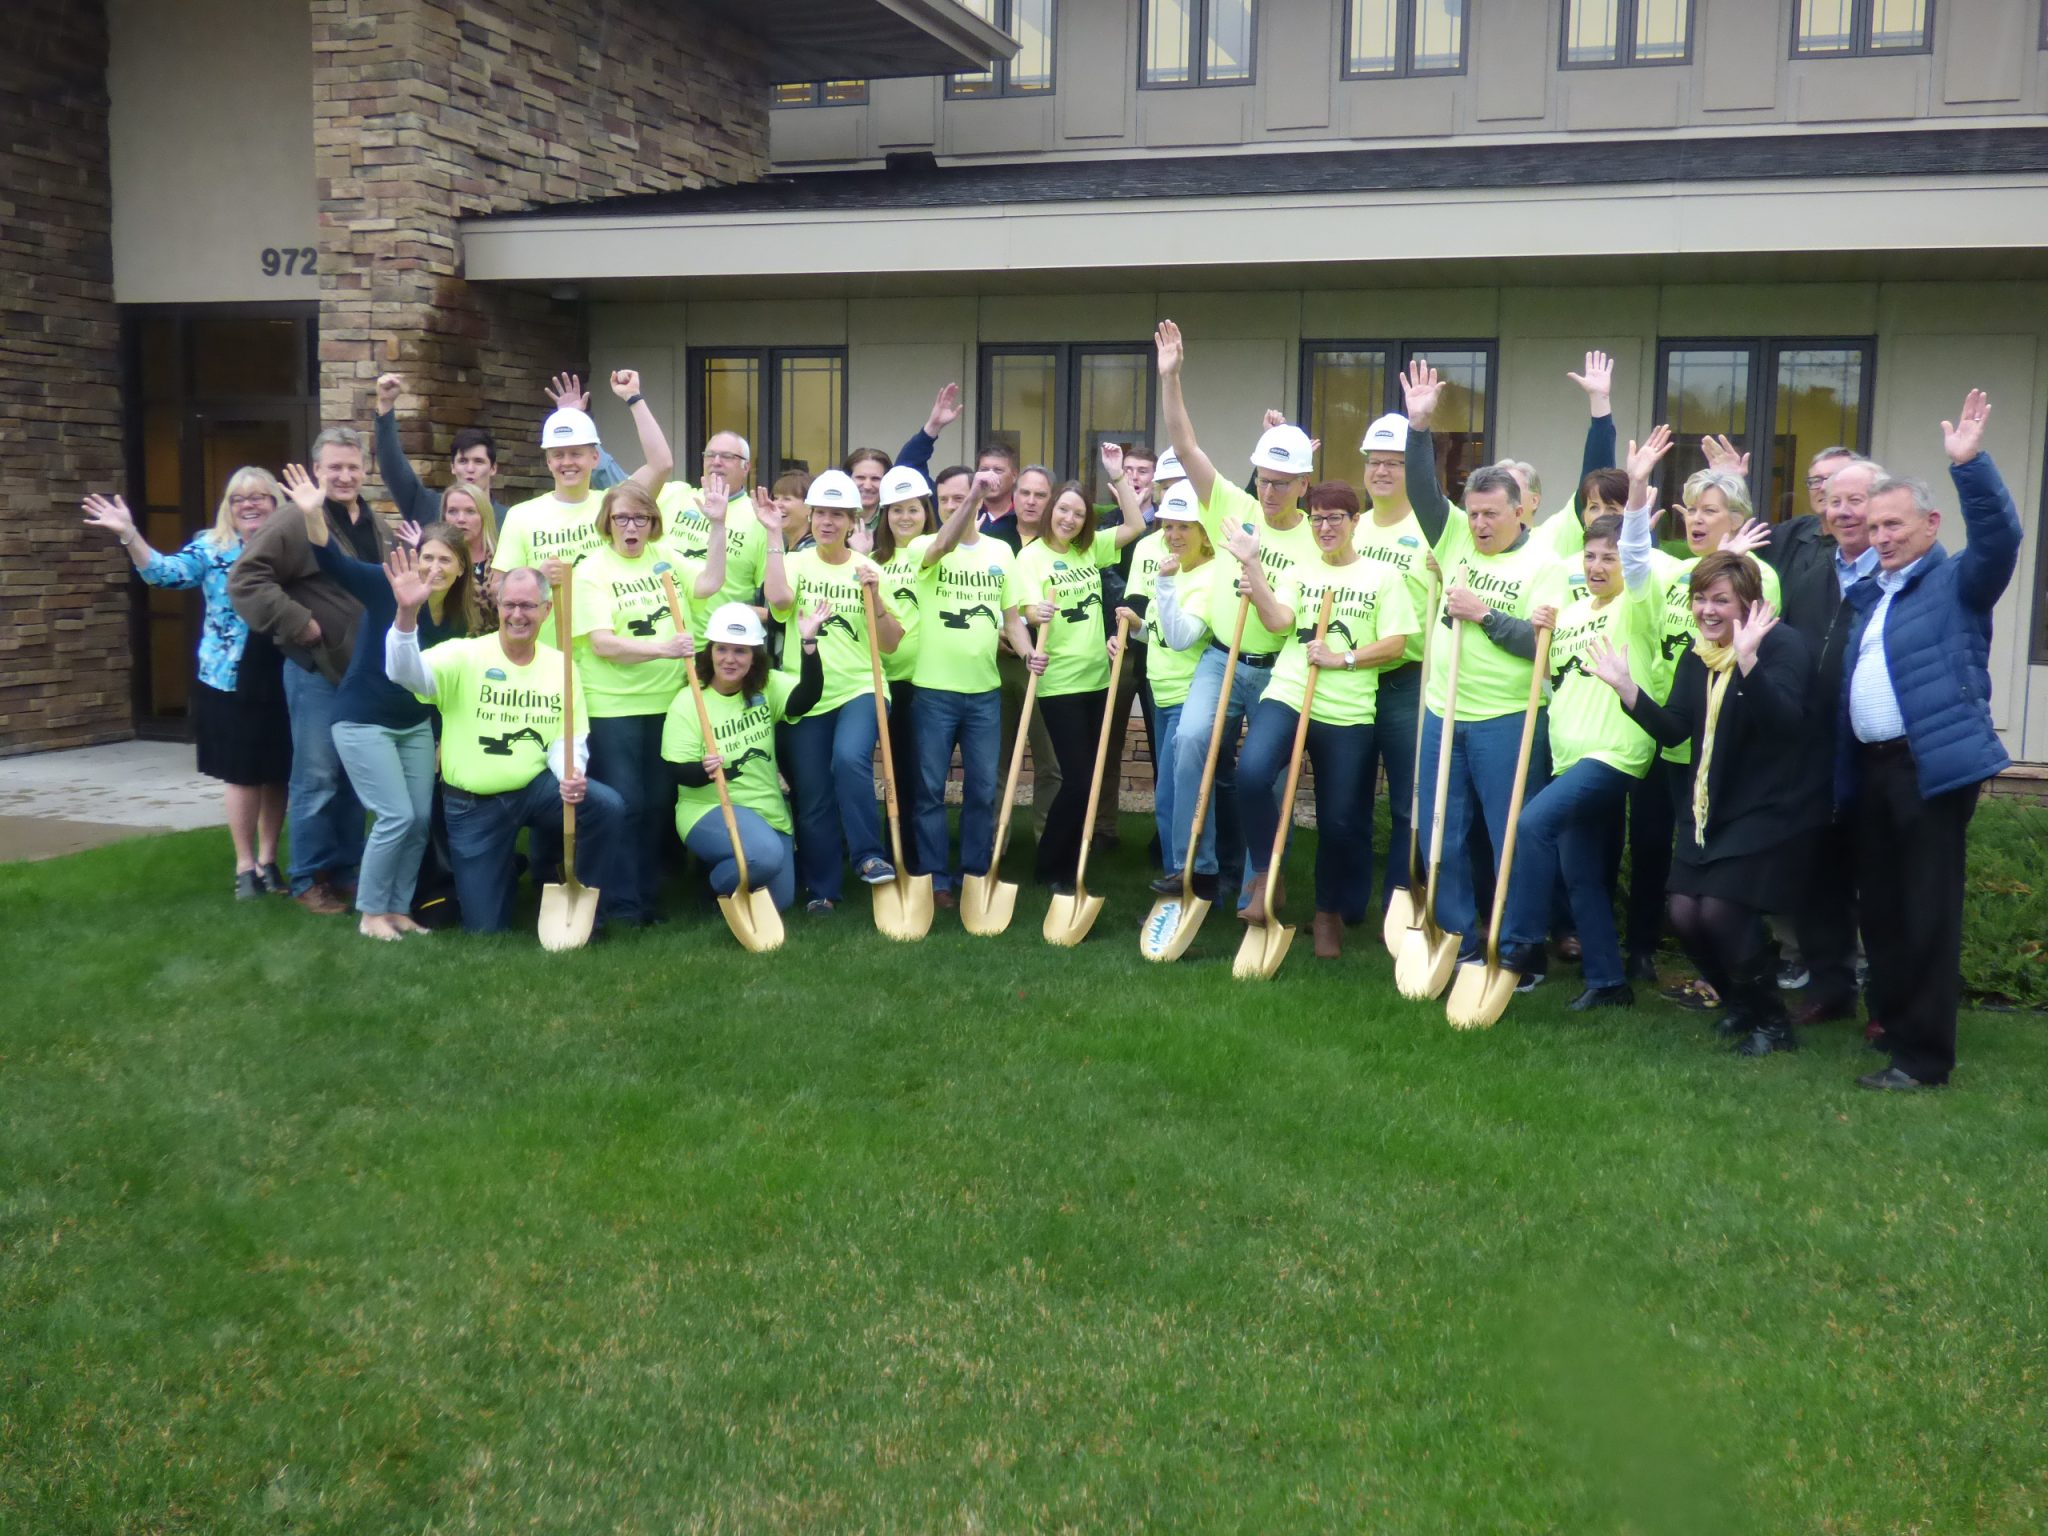 2017-04-25 Lakeview Groundbreaking (20)